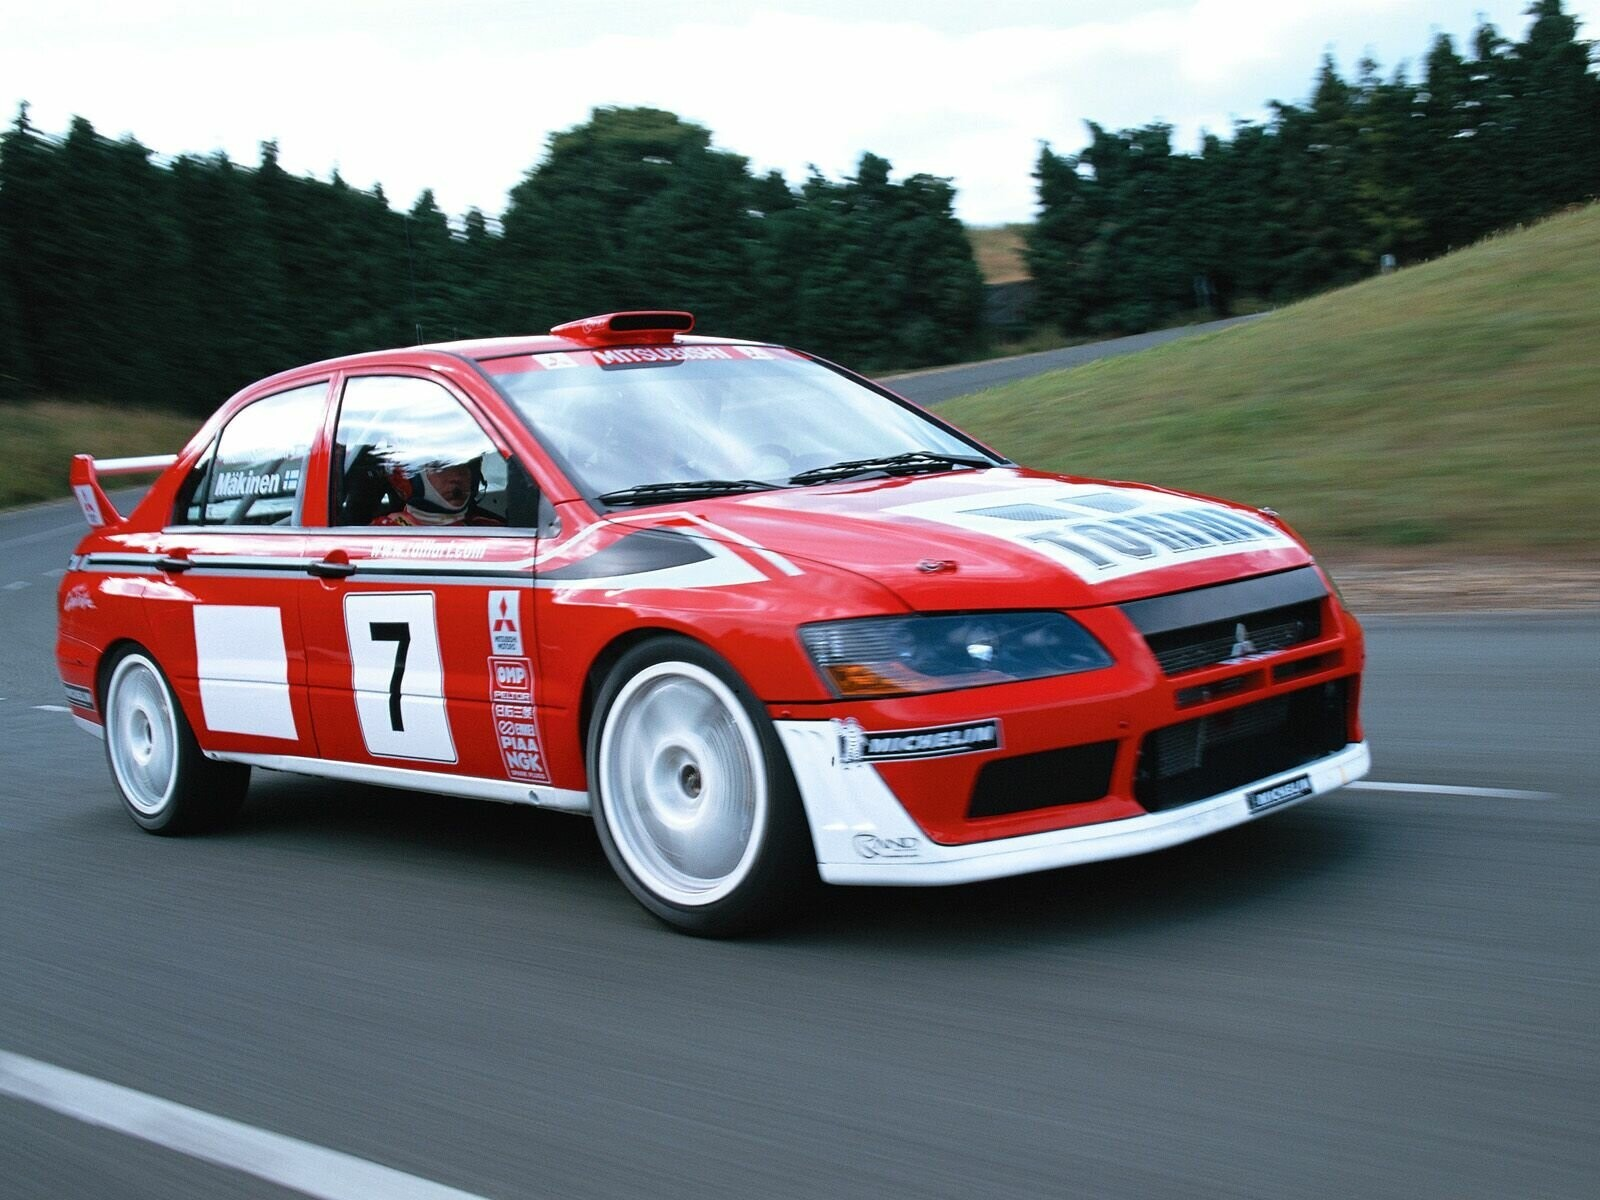 cars Mitsubishi Racer race HD Wallpaper